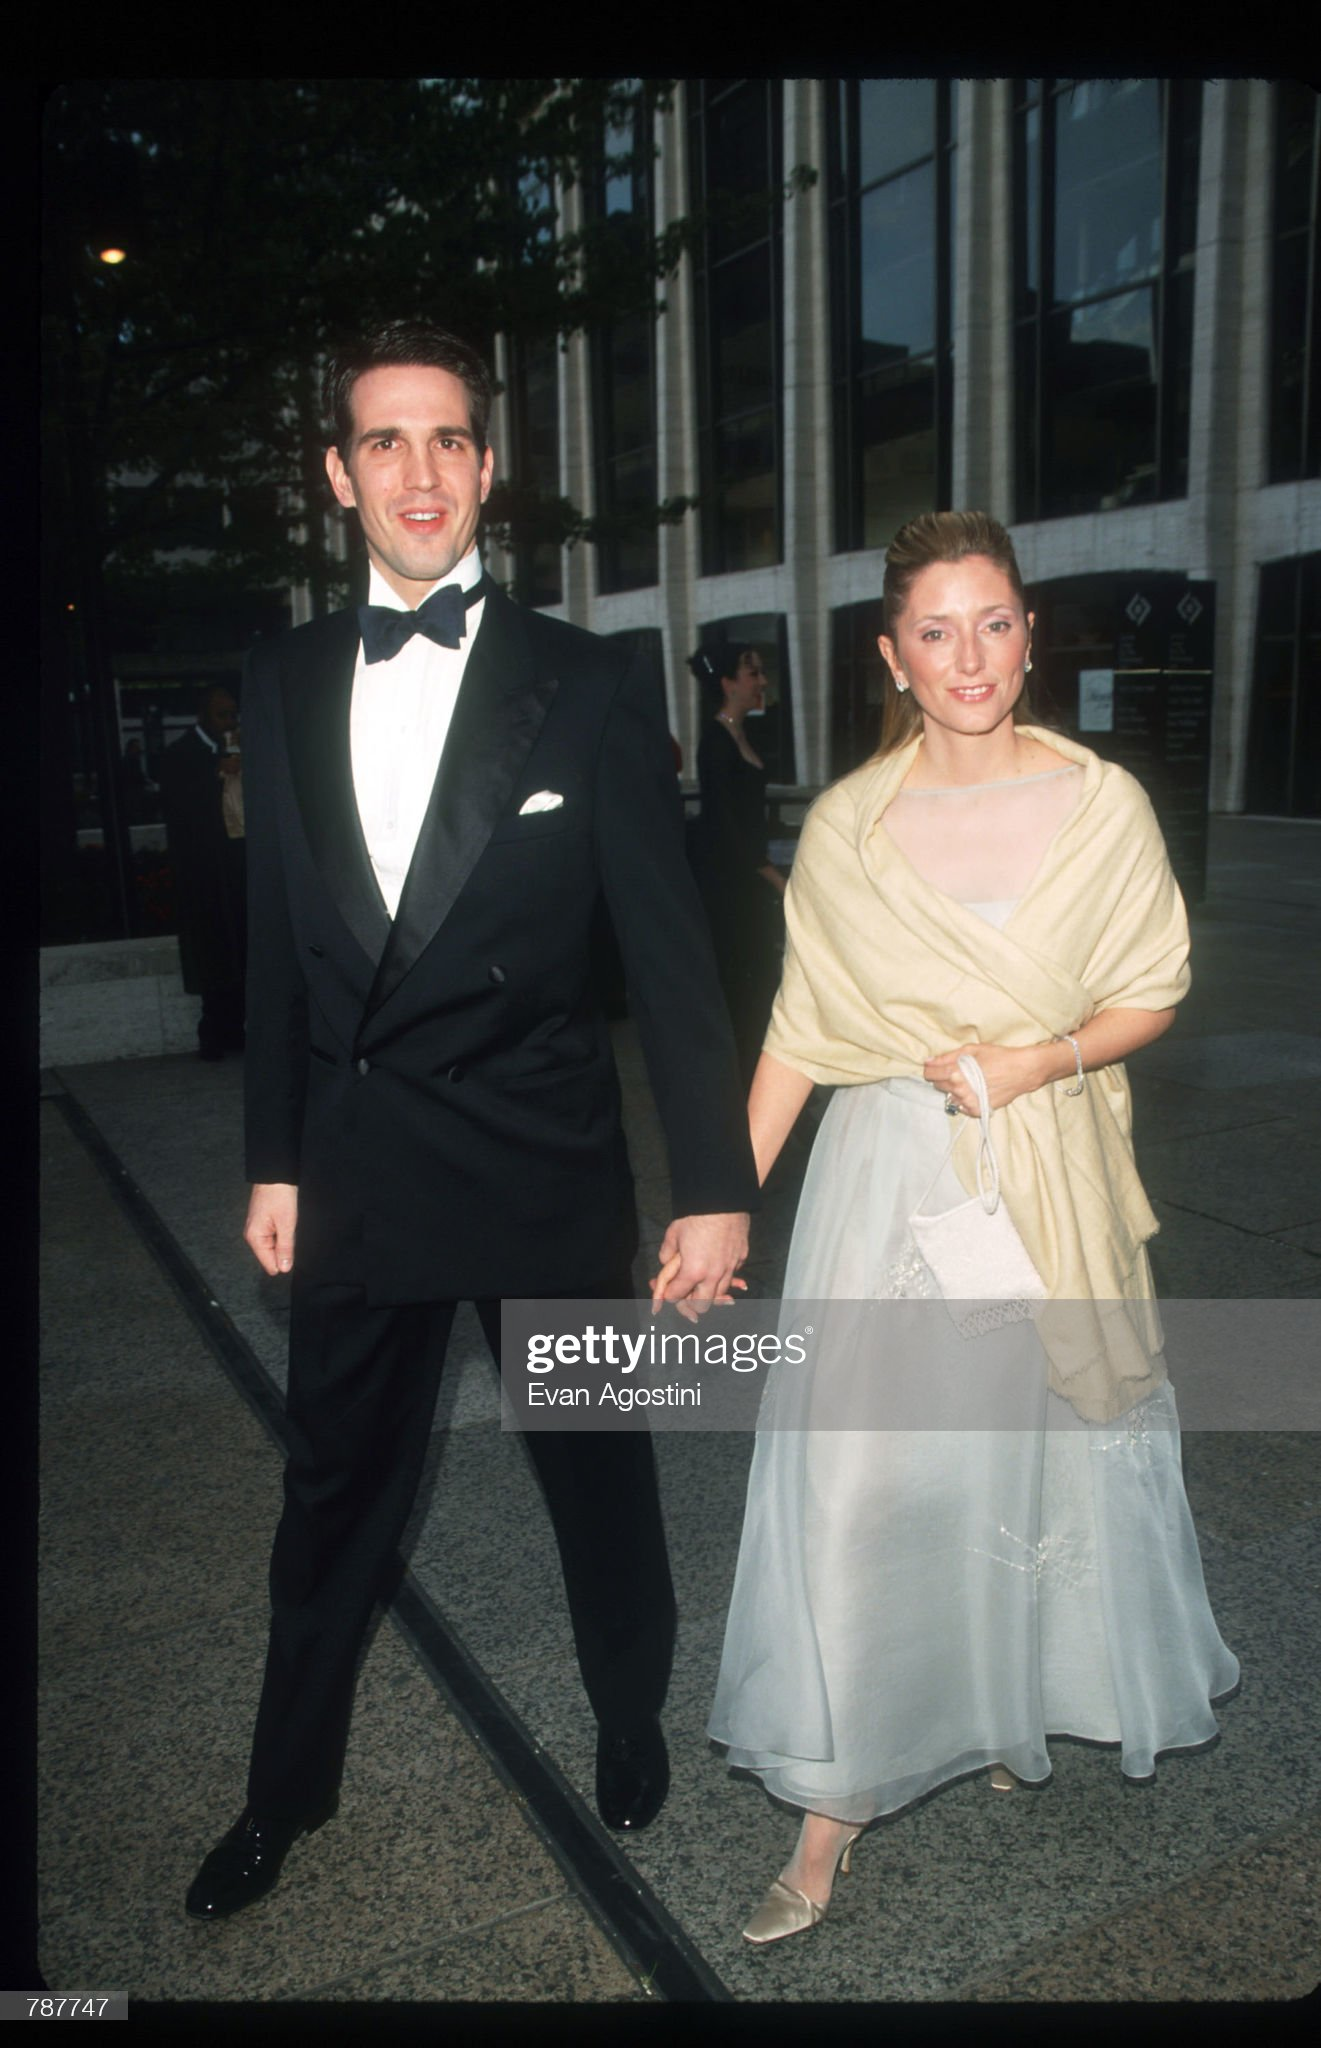 Prince Pavlos And His Wife At Lincoln Center : News Photo